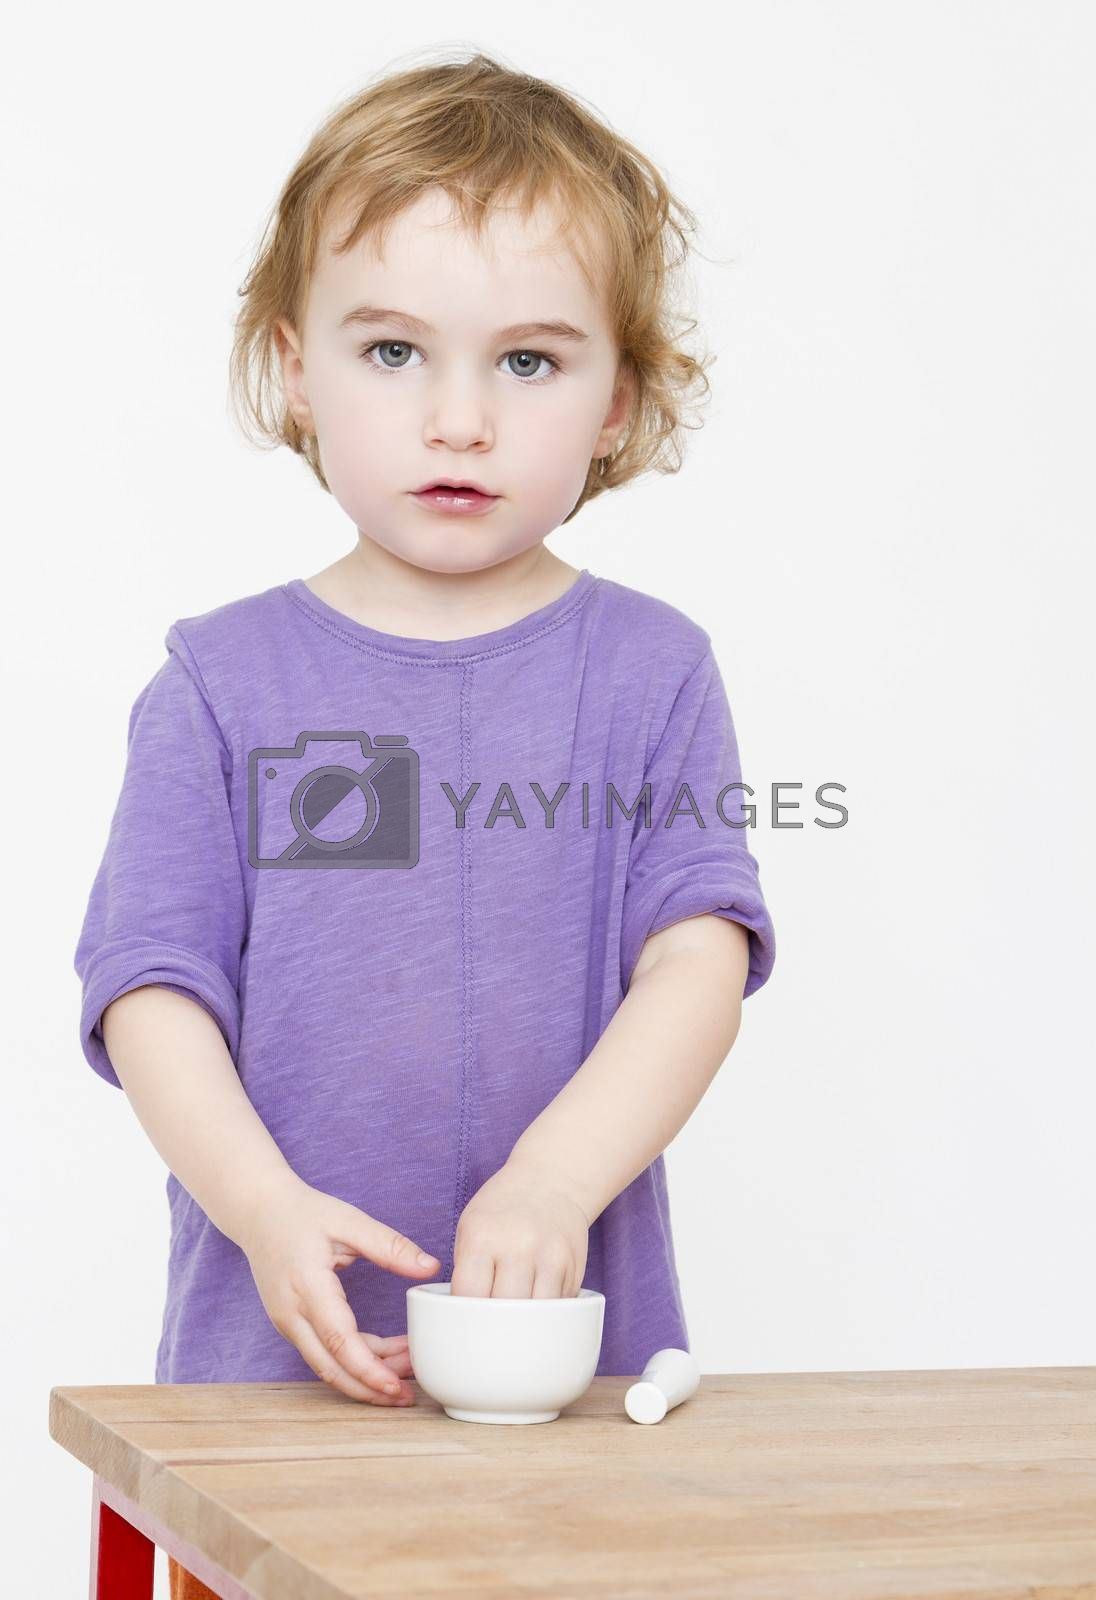 Royalty free image of cute girl looking in camera by gewoldi